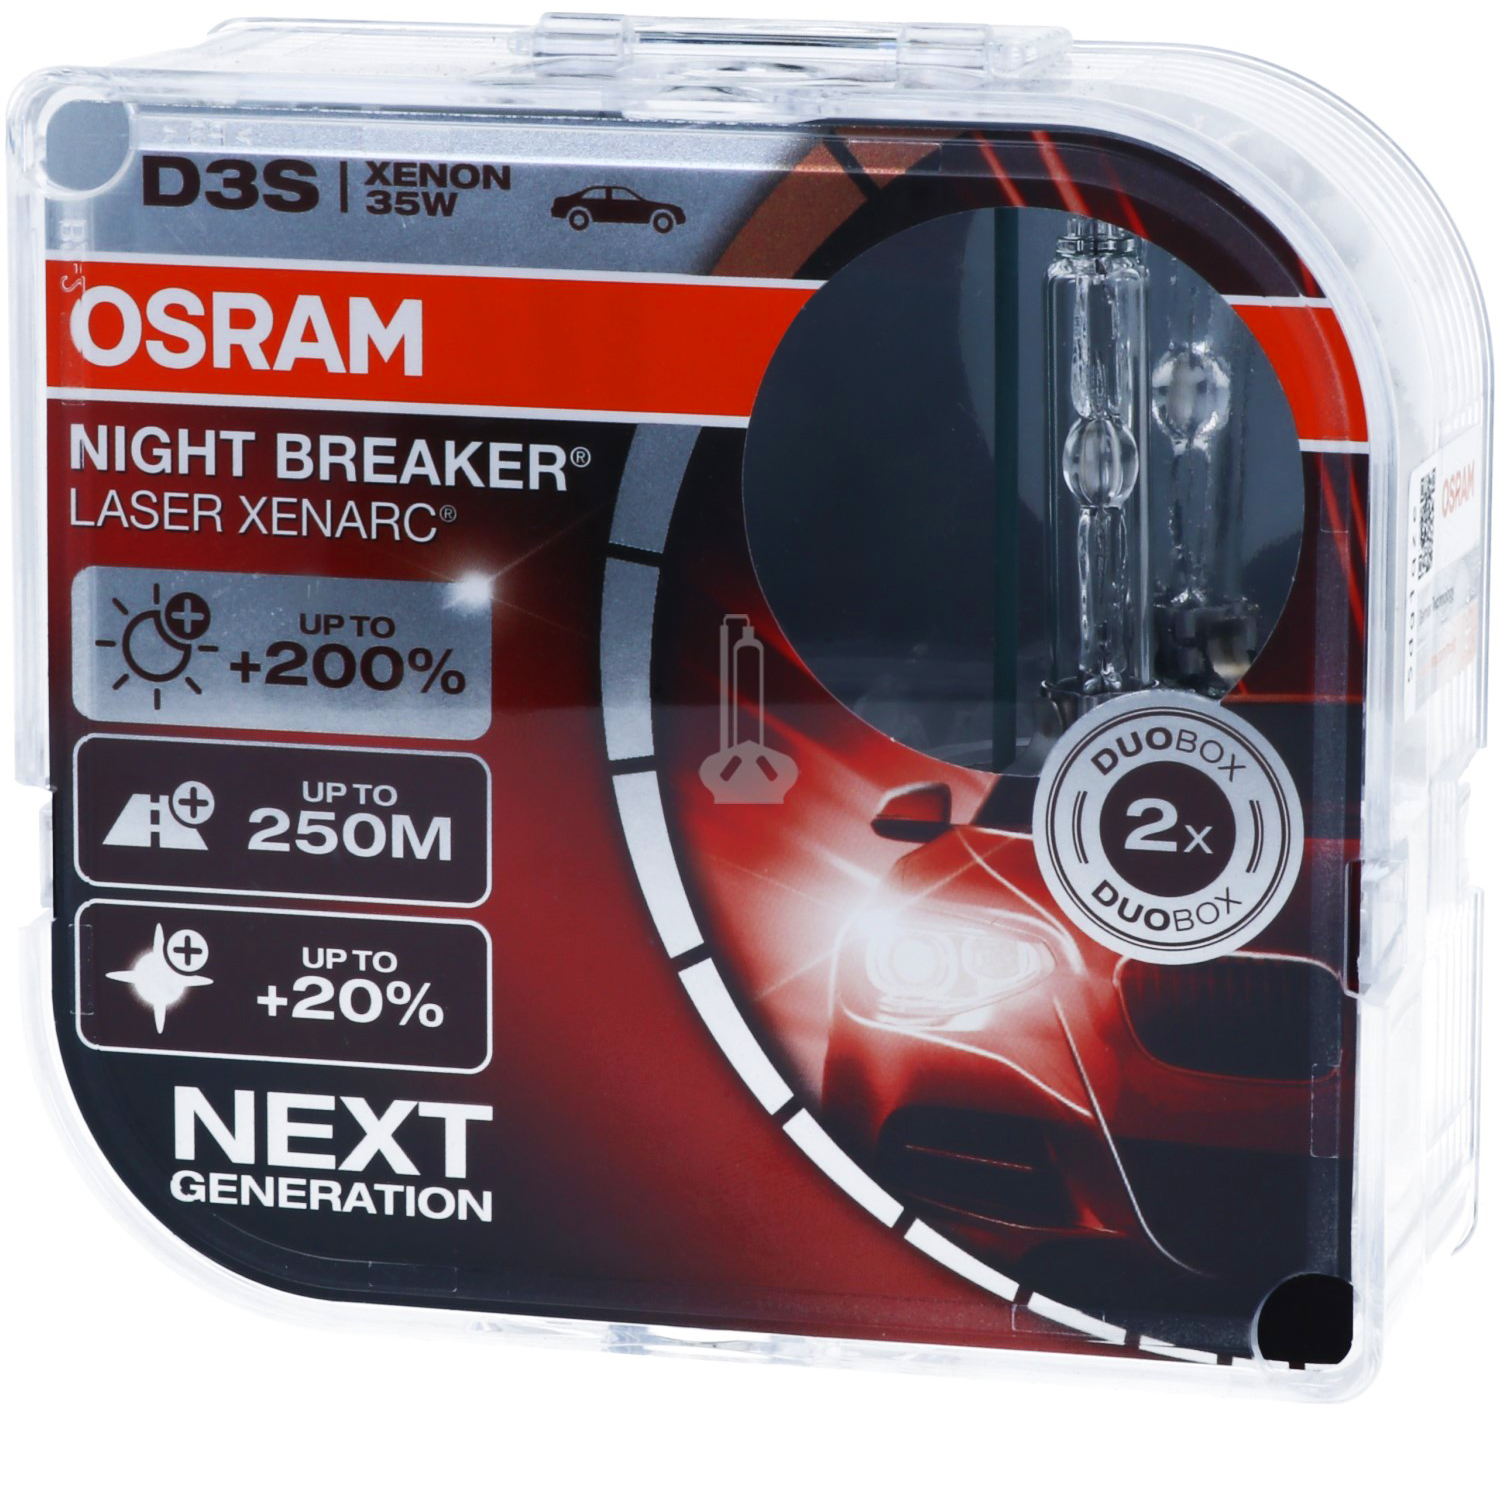 osram d3s 66340xnl night breaker laser xenarc next. Black Bedroom Furniture Sets. Home Design Ideas